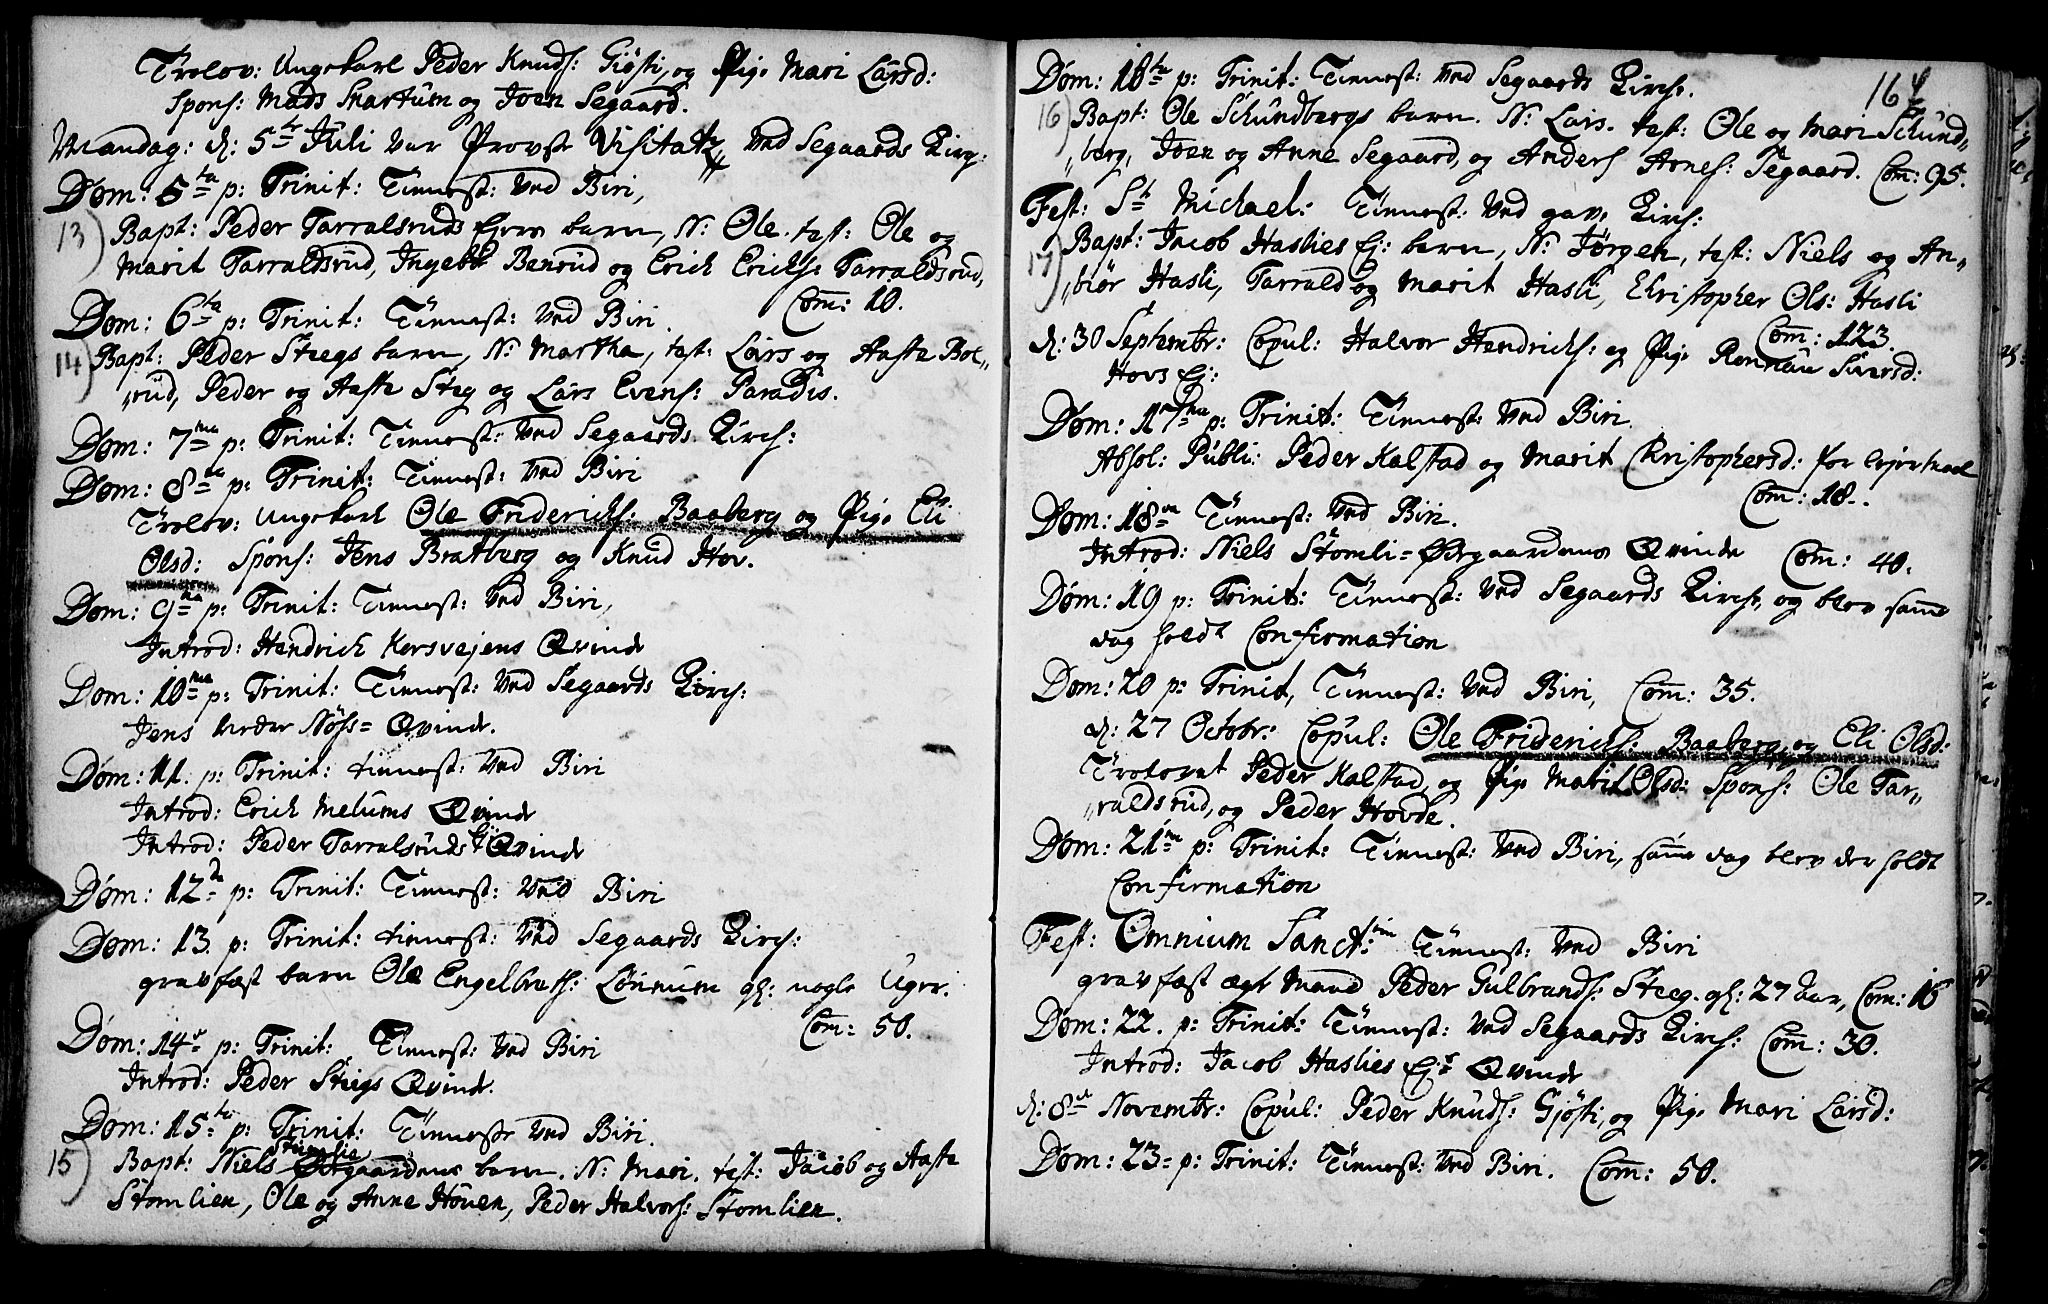 SAH, Biri prestekontor, Parish register (official) no. 1, 1730-1754, p. 167